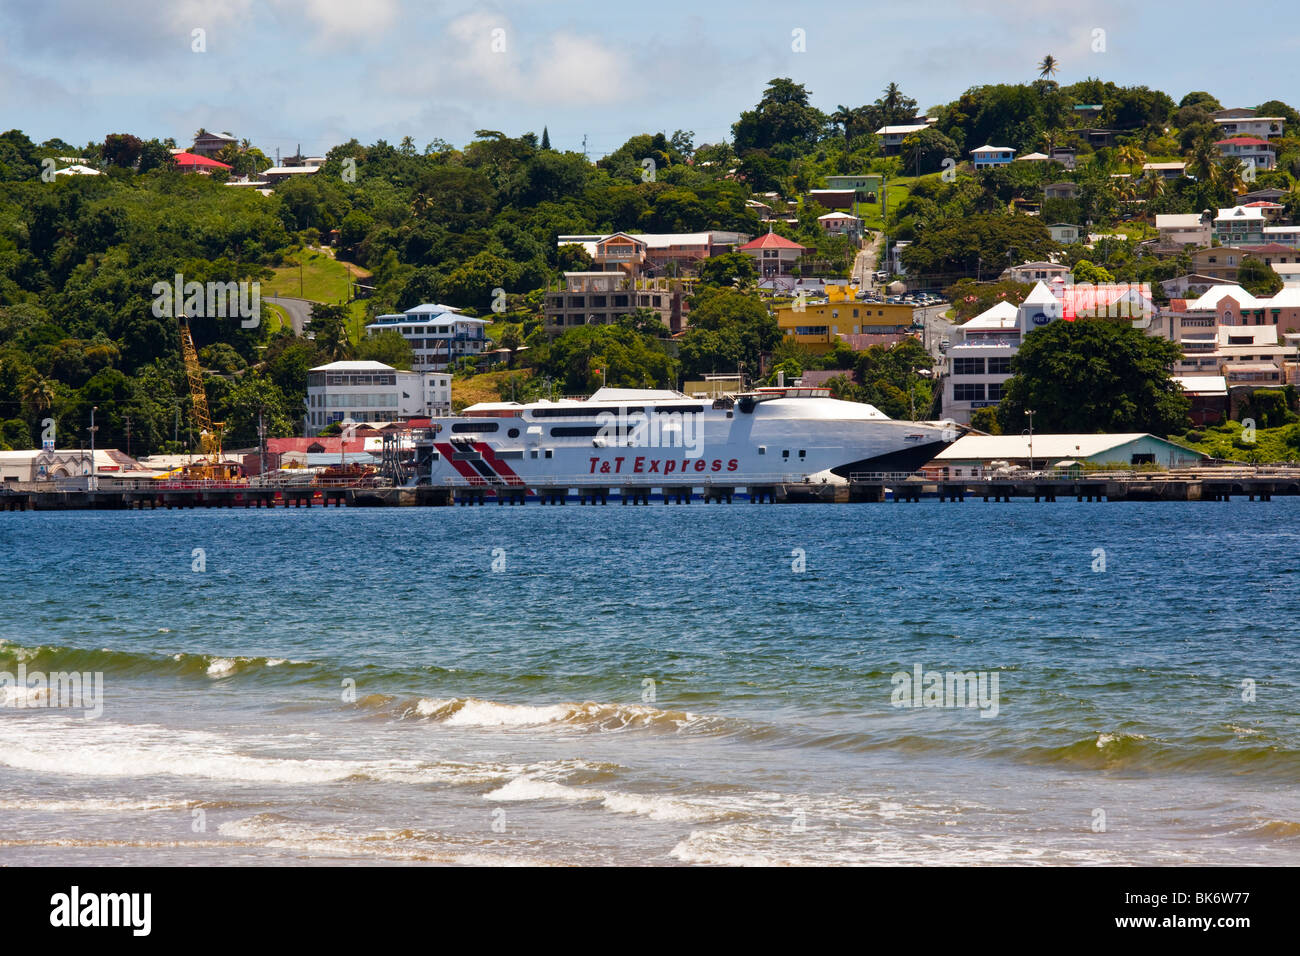 Trinidad and Tobago Spirit, Catamaran Ferry in Port in Tobago - Stock Image